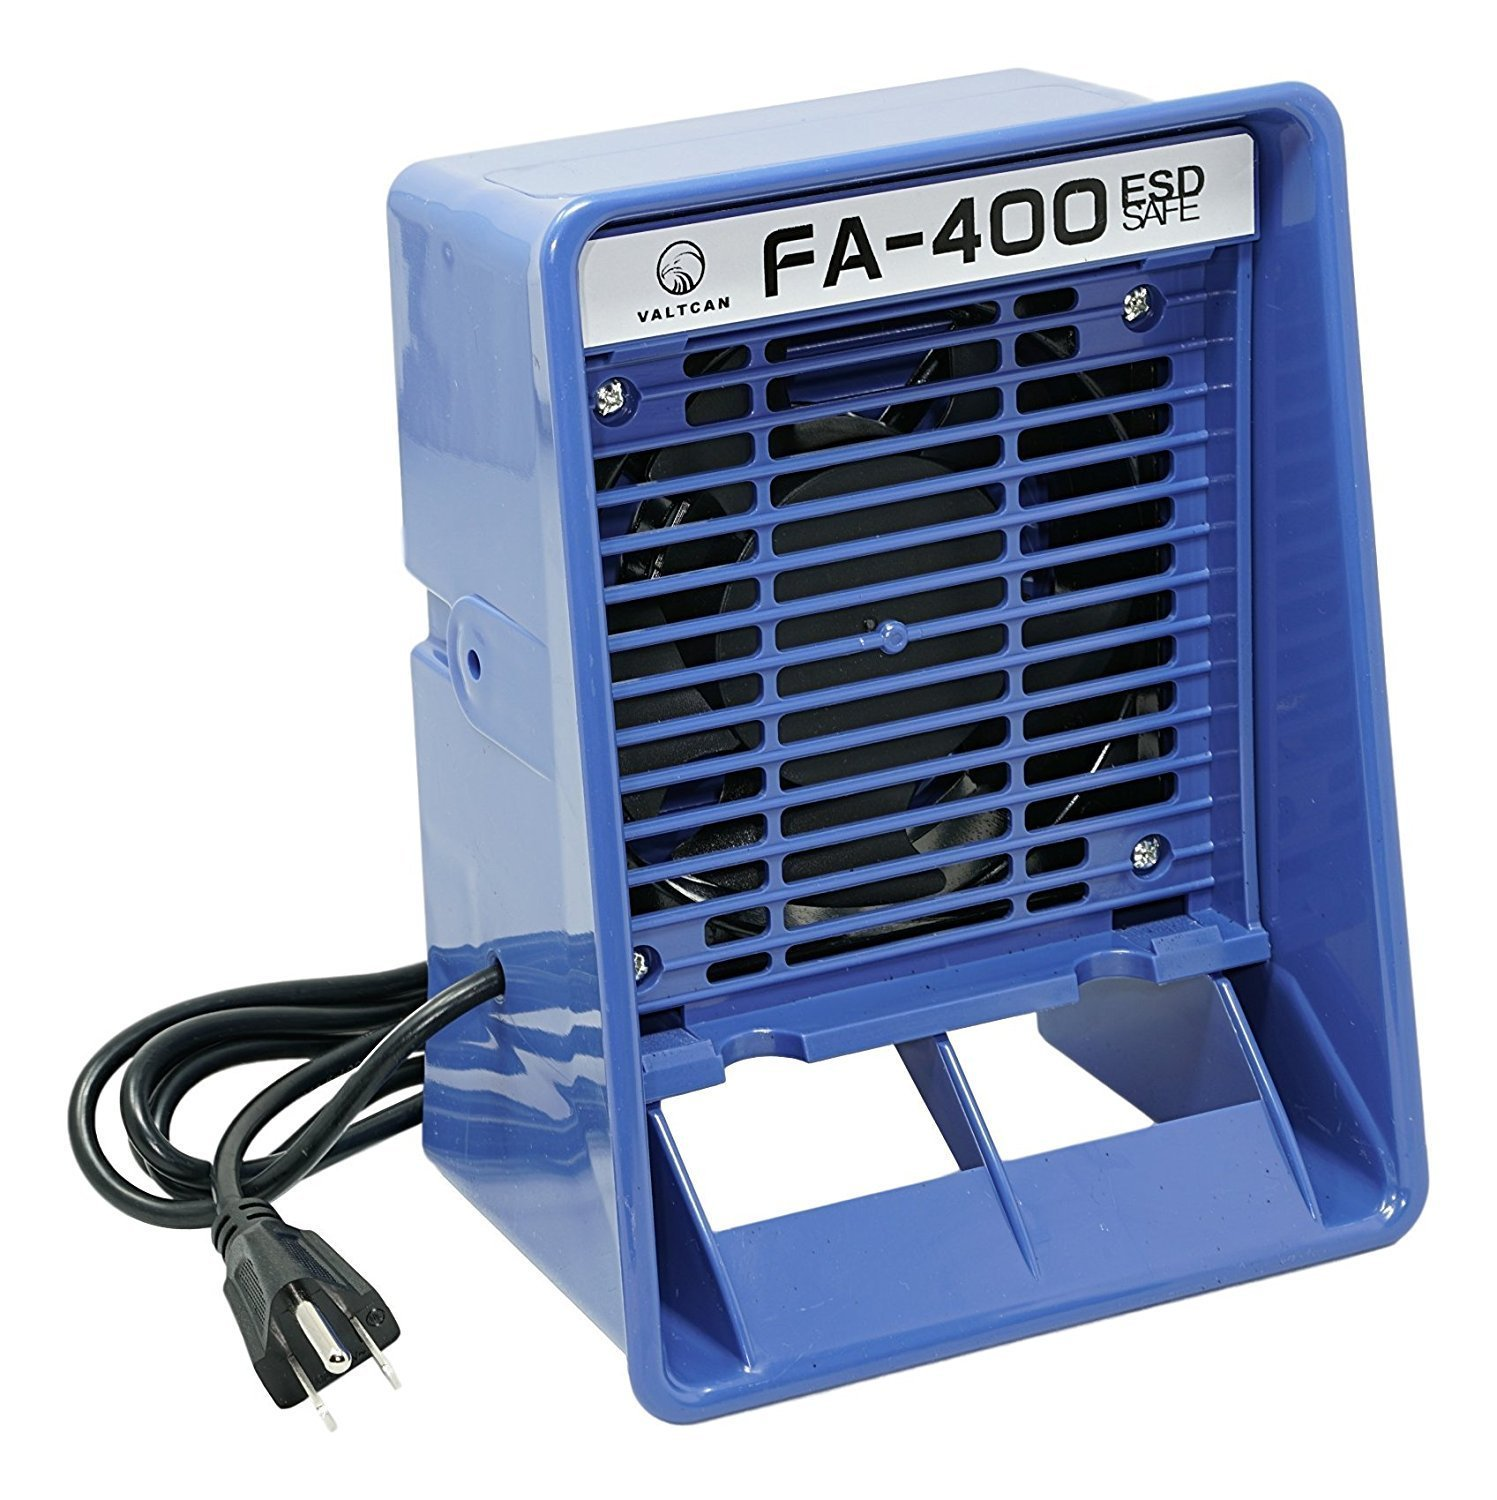 VALTCAN Solder Smoke Absorber Fume Remover Fan Carbon Filter ESD Safe FA400 by Valtcan (Image #2)